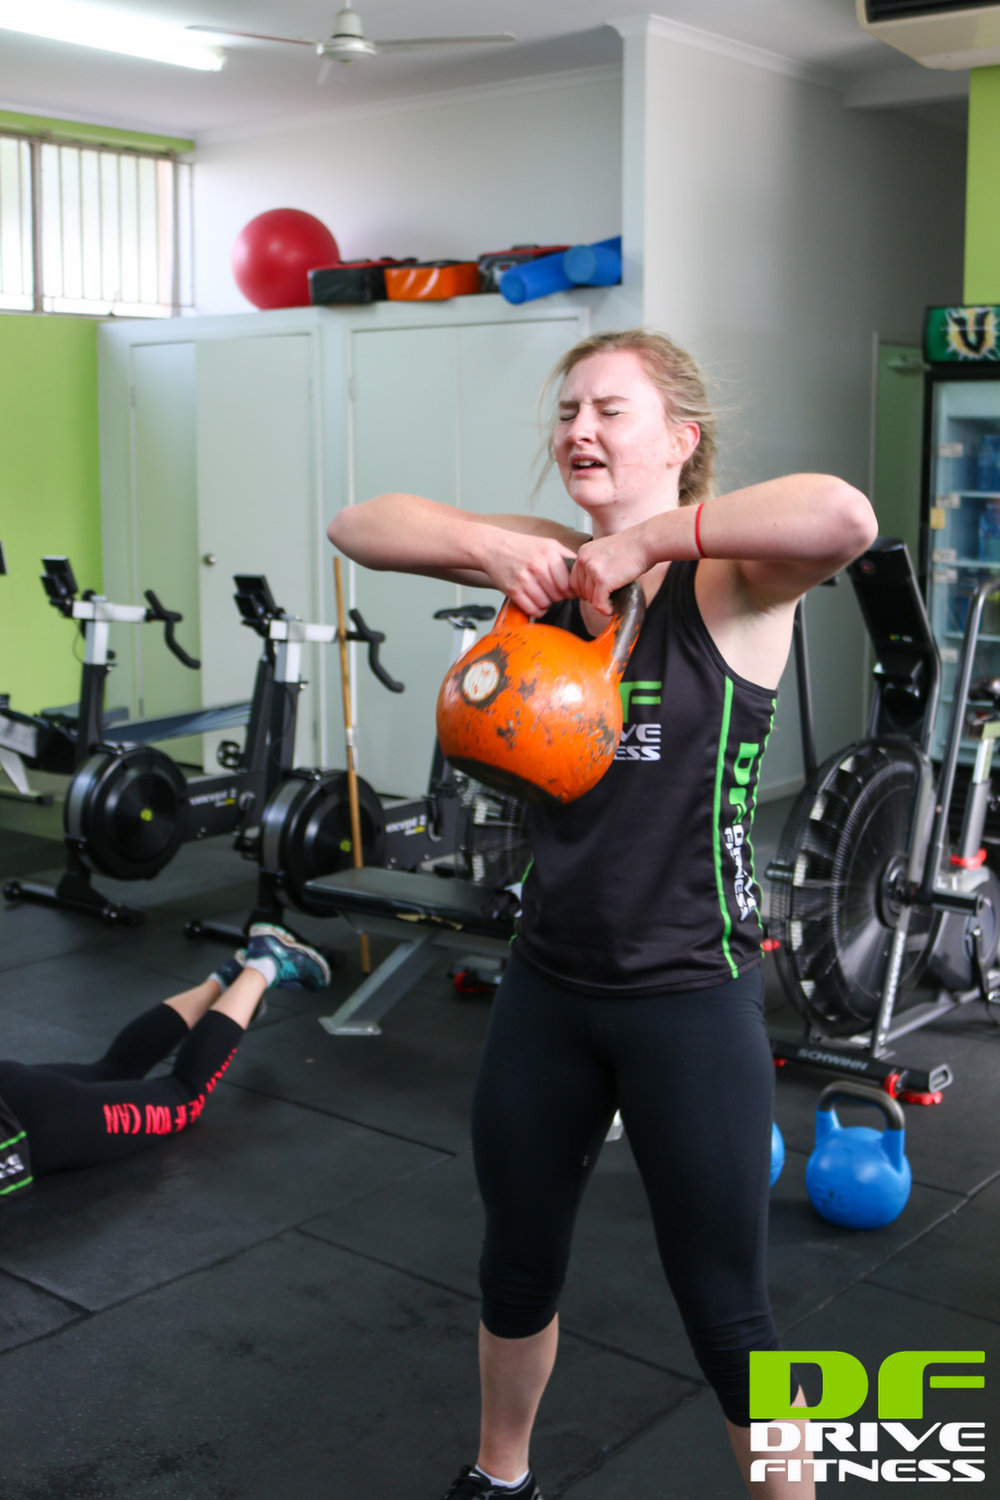 drive-fitness-personal-training-brisbane-4wws-2018 (30 of 34).jpg